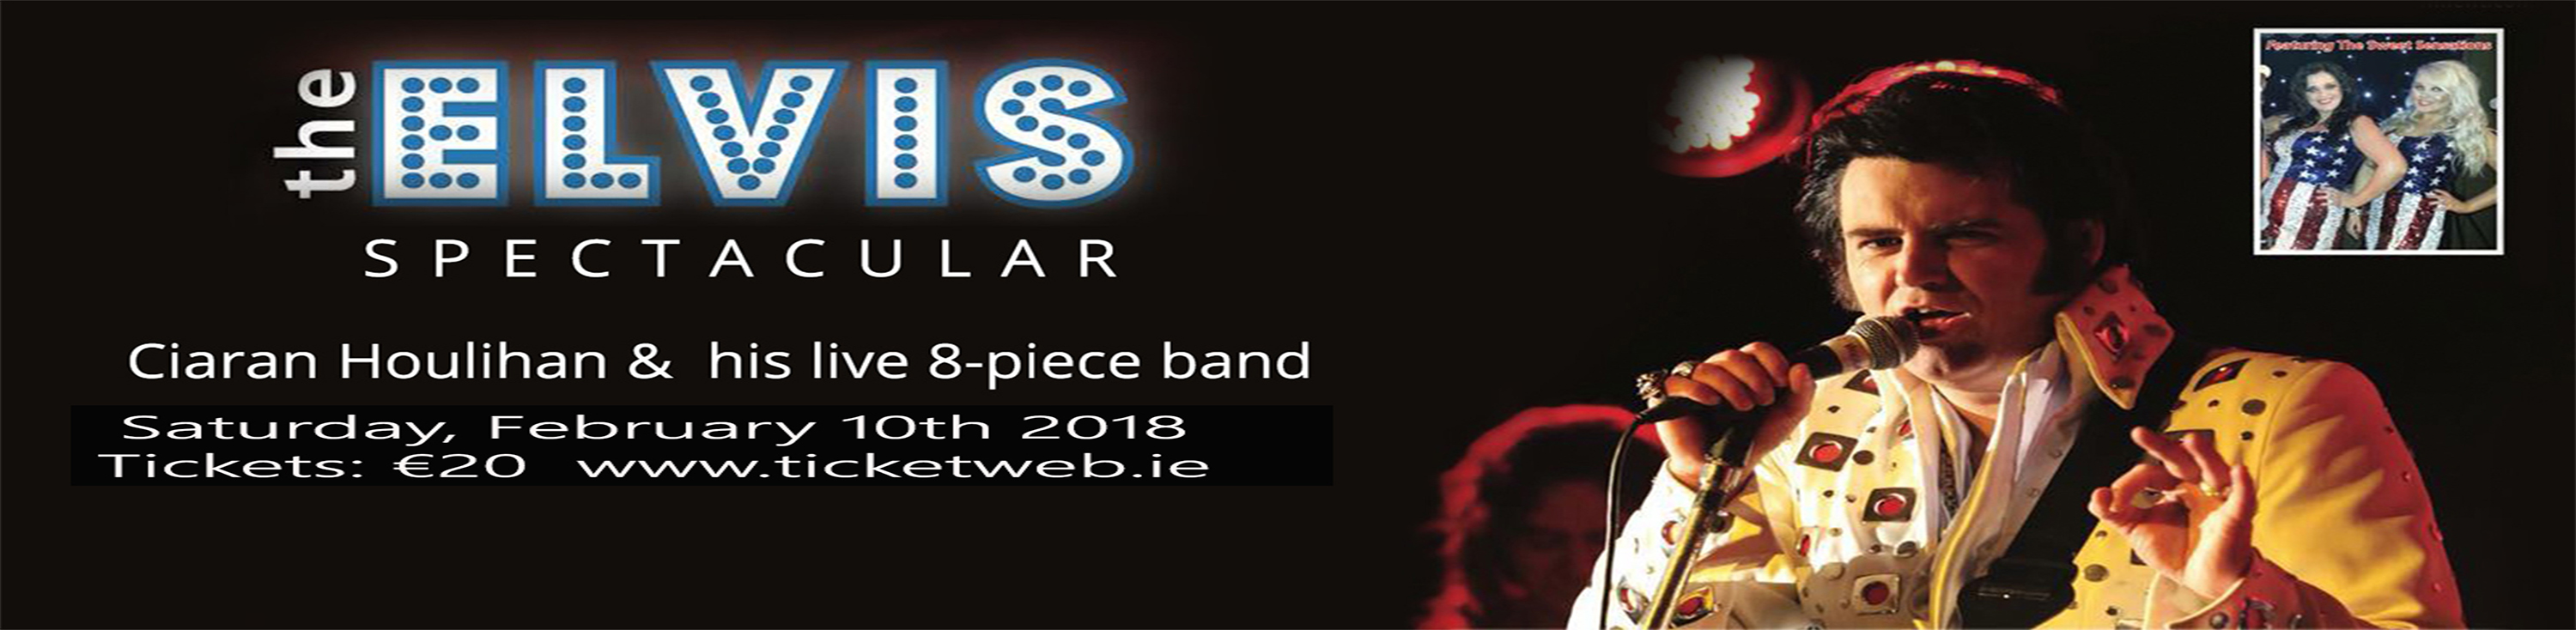 https://www.ticketweb.ie/event/the-elvis-spectacular-show-the-barbican-centre-tickets/7785445